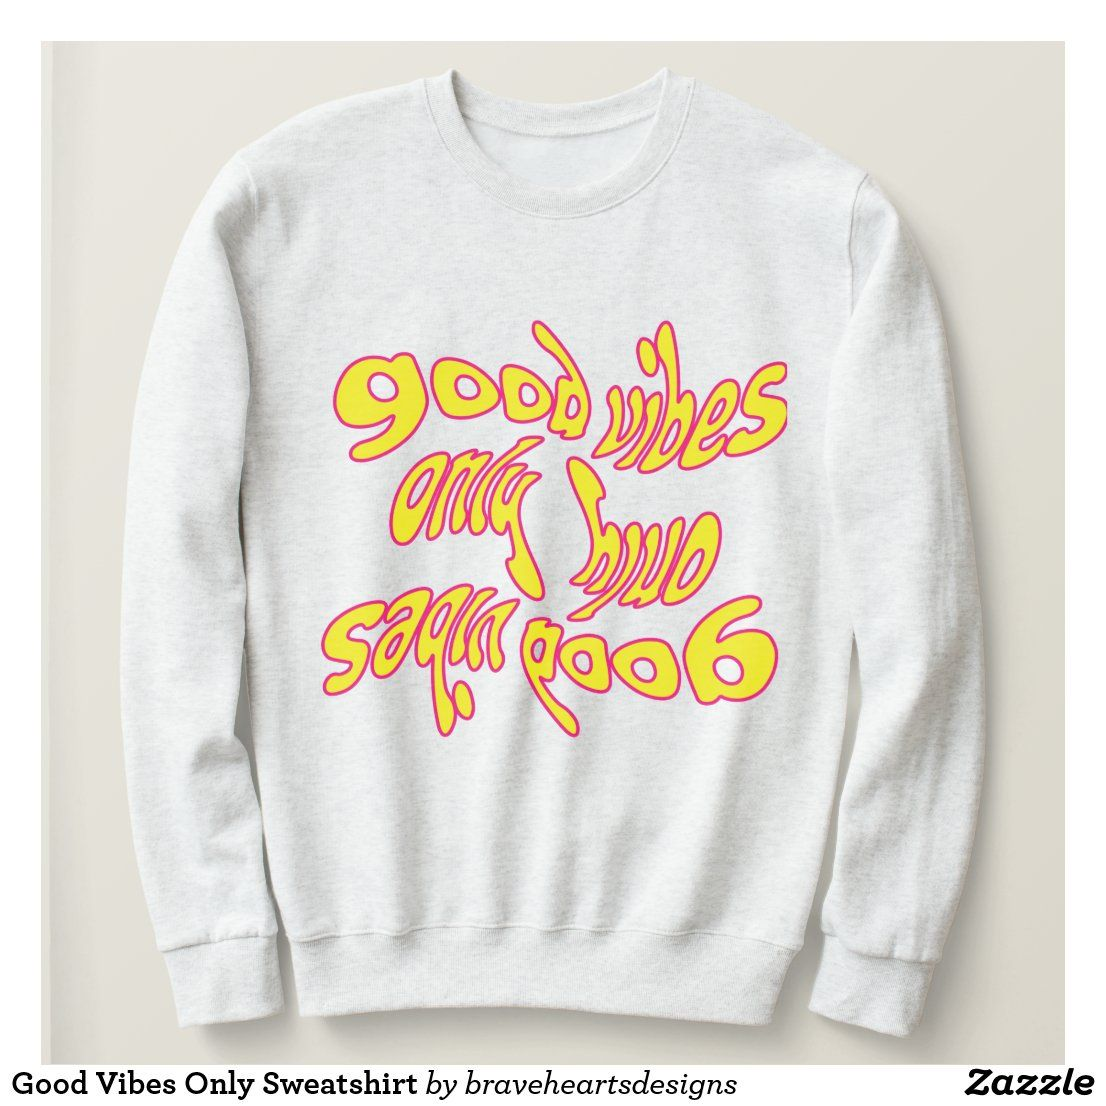 33++ Good vibes only sweatshirt ideas in 2021